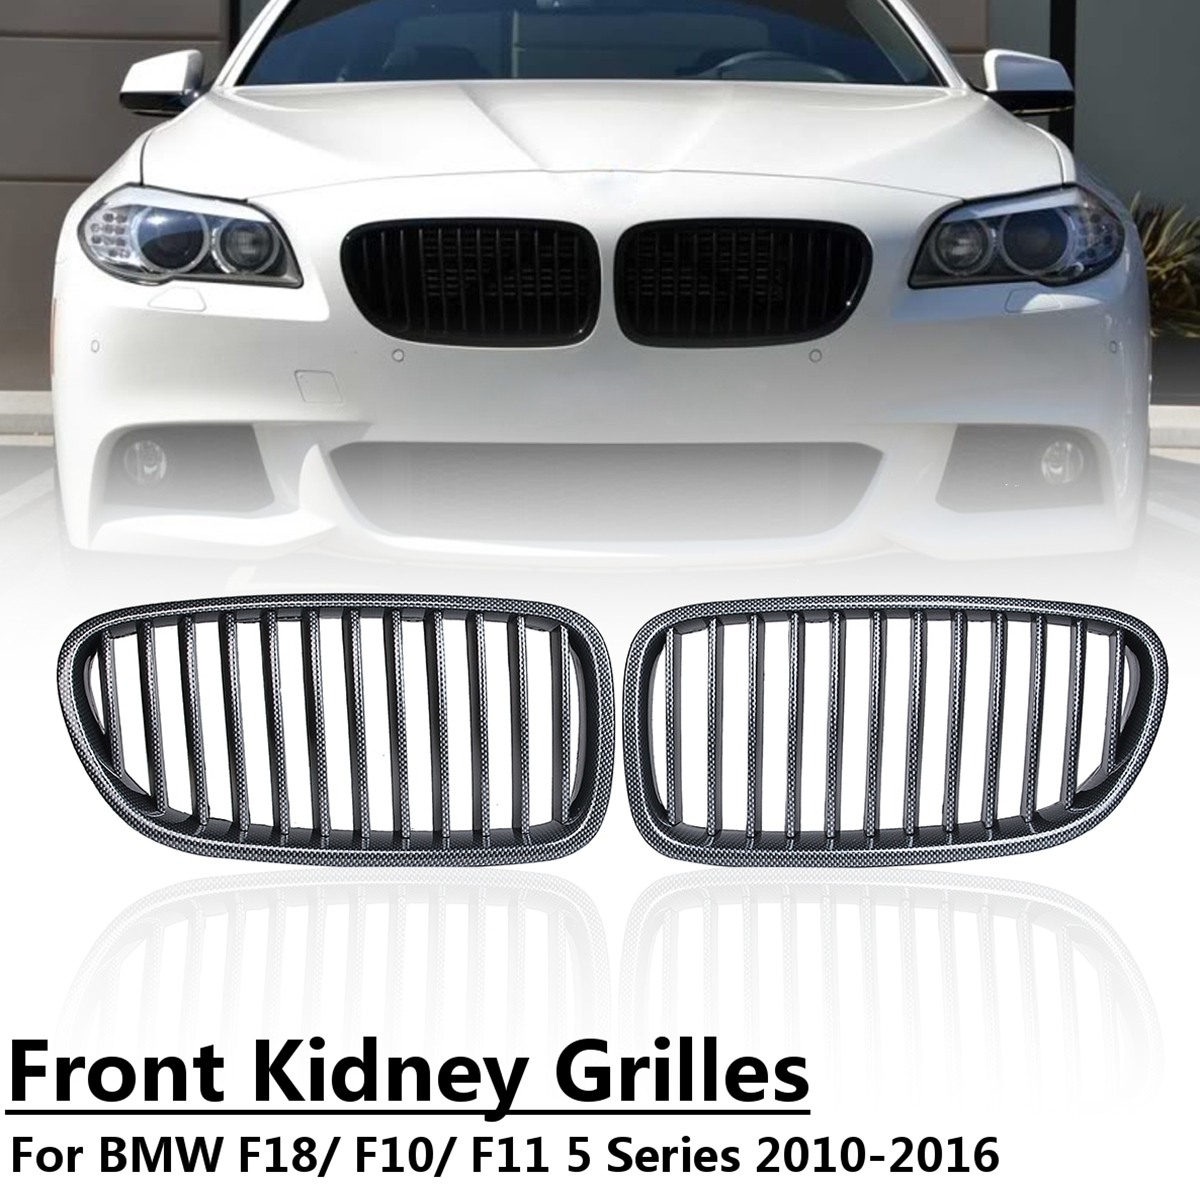 for BMW F18 F10 F11 5 Series 2011 2012 2013 2014 1 Pair Kidney Replacement Grille Carbon Fiber Black Front Kidney Grill Grilles 3pcs set m color front grill bumper cover trim decoration strip sticker for bmw 5 series f10 f11 2011 2013 f10 f18 2014 2015